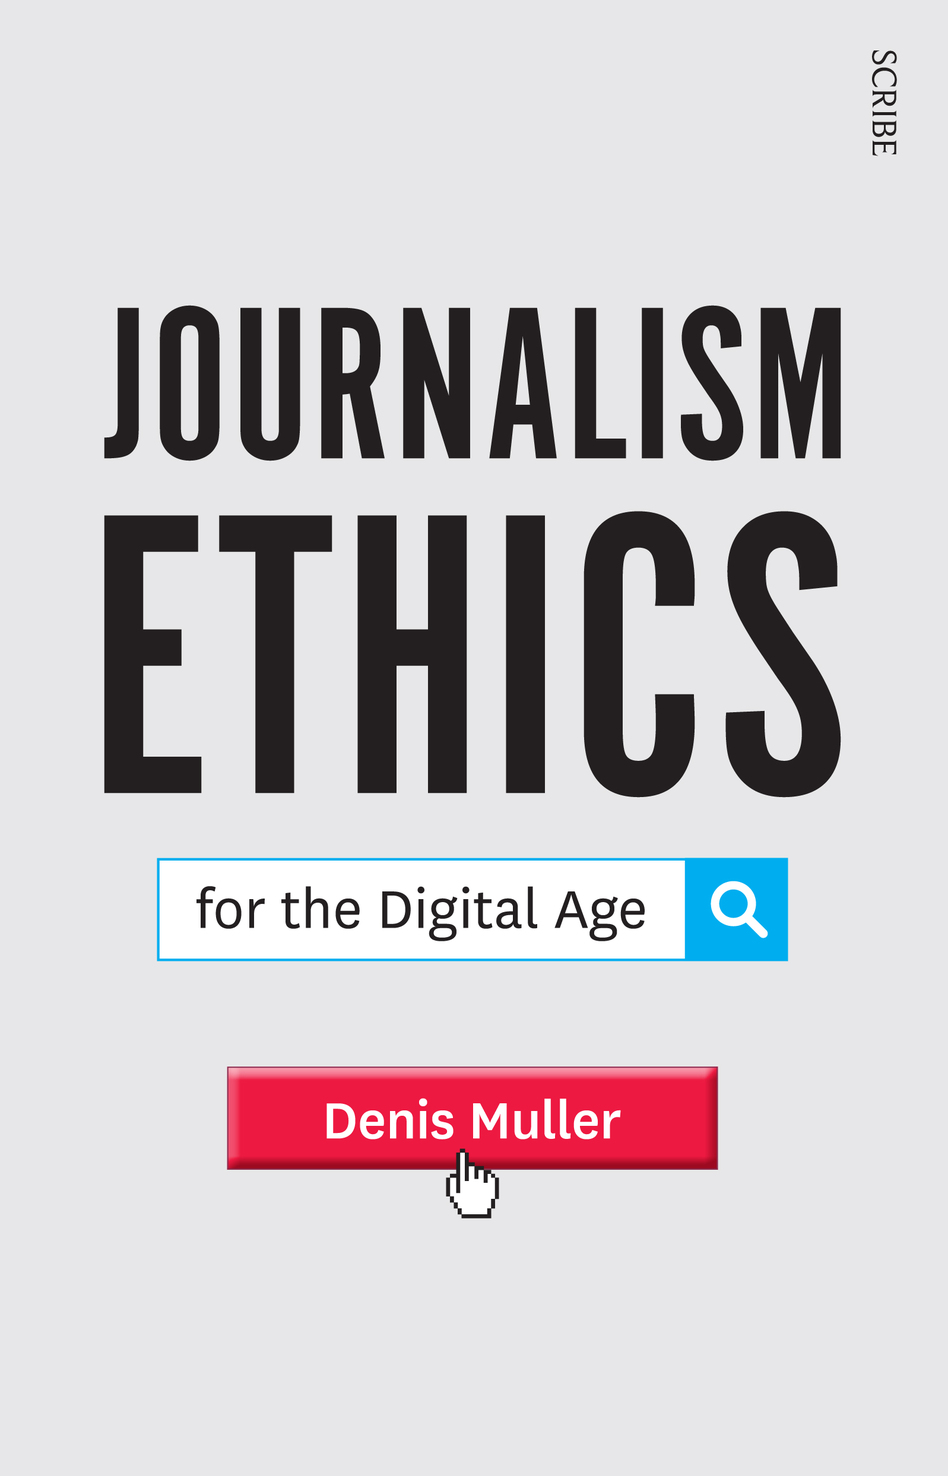 essay about journalism ethics